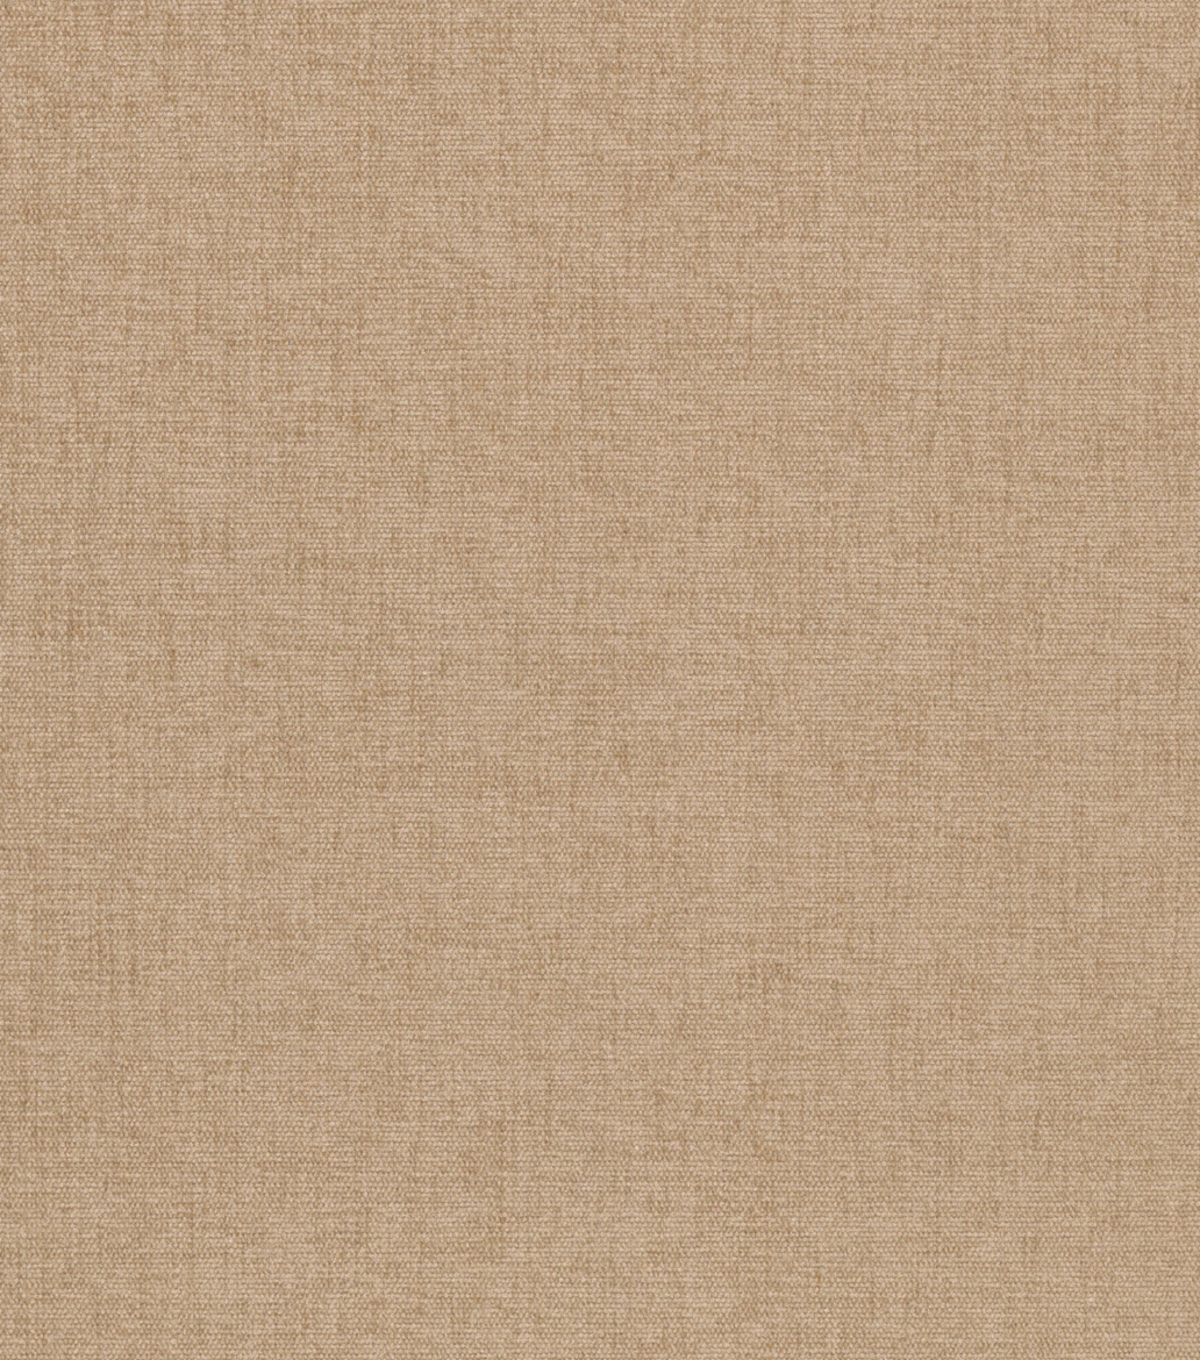 "Home Decor 8""x8"" Fabric Swatch-Charisma Beige"